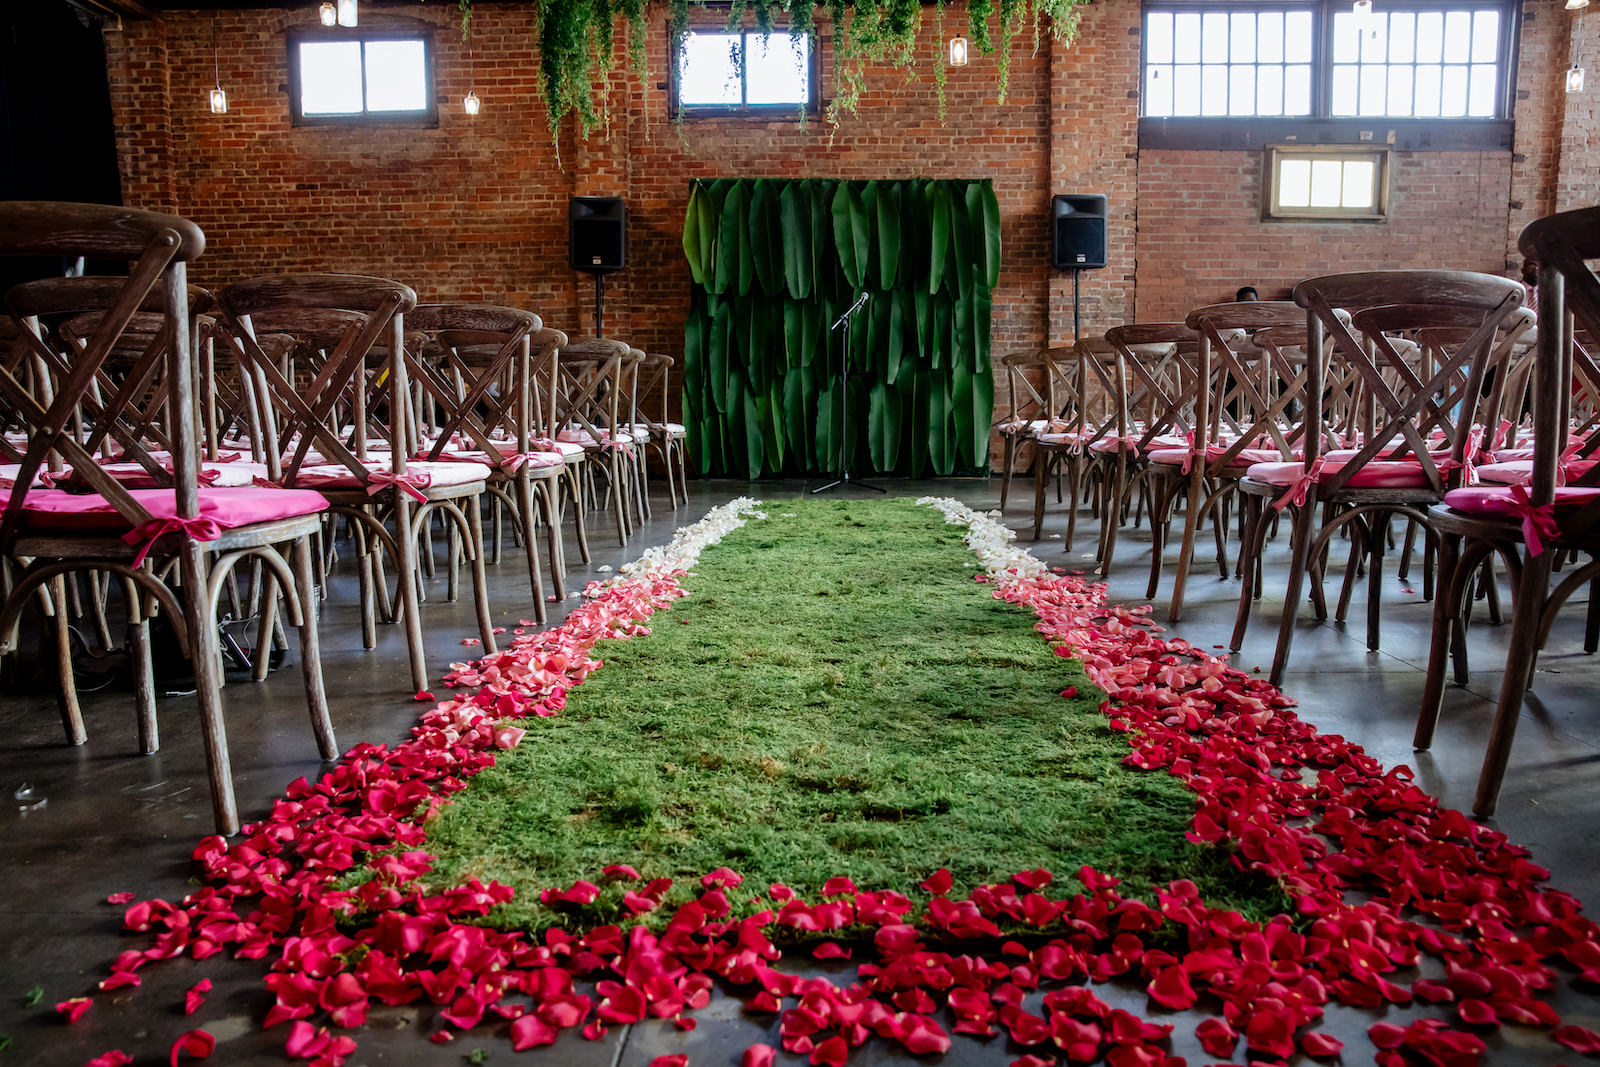 Modern Wedding Ceremony Backdrop with Tropical Palm Leaves and Moss Aisle Runner with Ombre Pink and White Rose Petals   Wood Cross Back Chairs and Historic Brick Walls   Suspended Greenery Garland Ceiling Installment Wedding Floral Chandelier